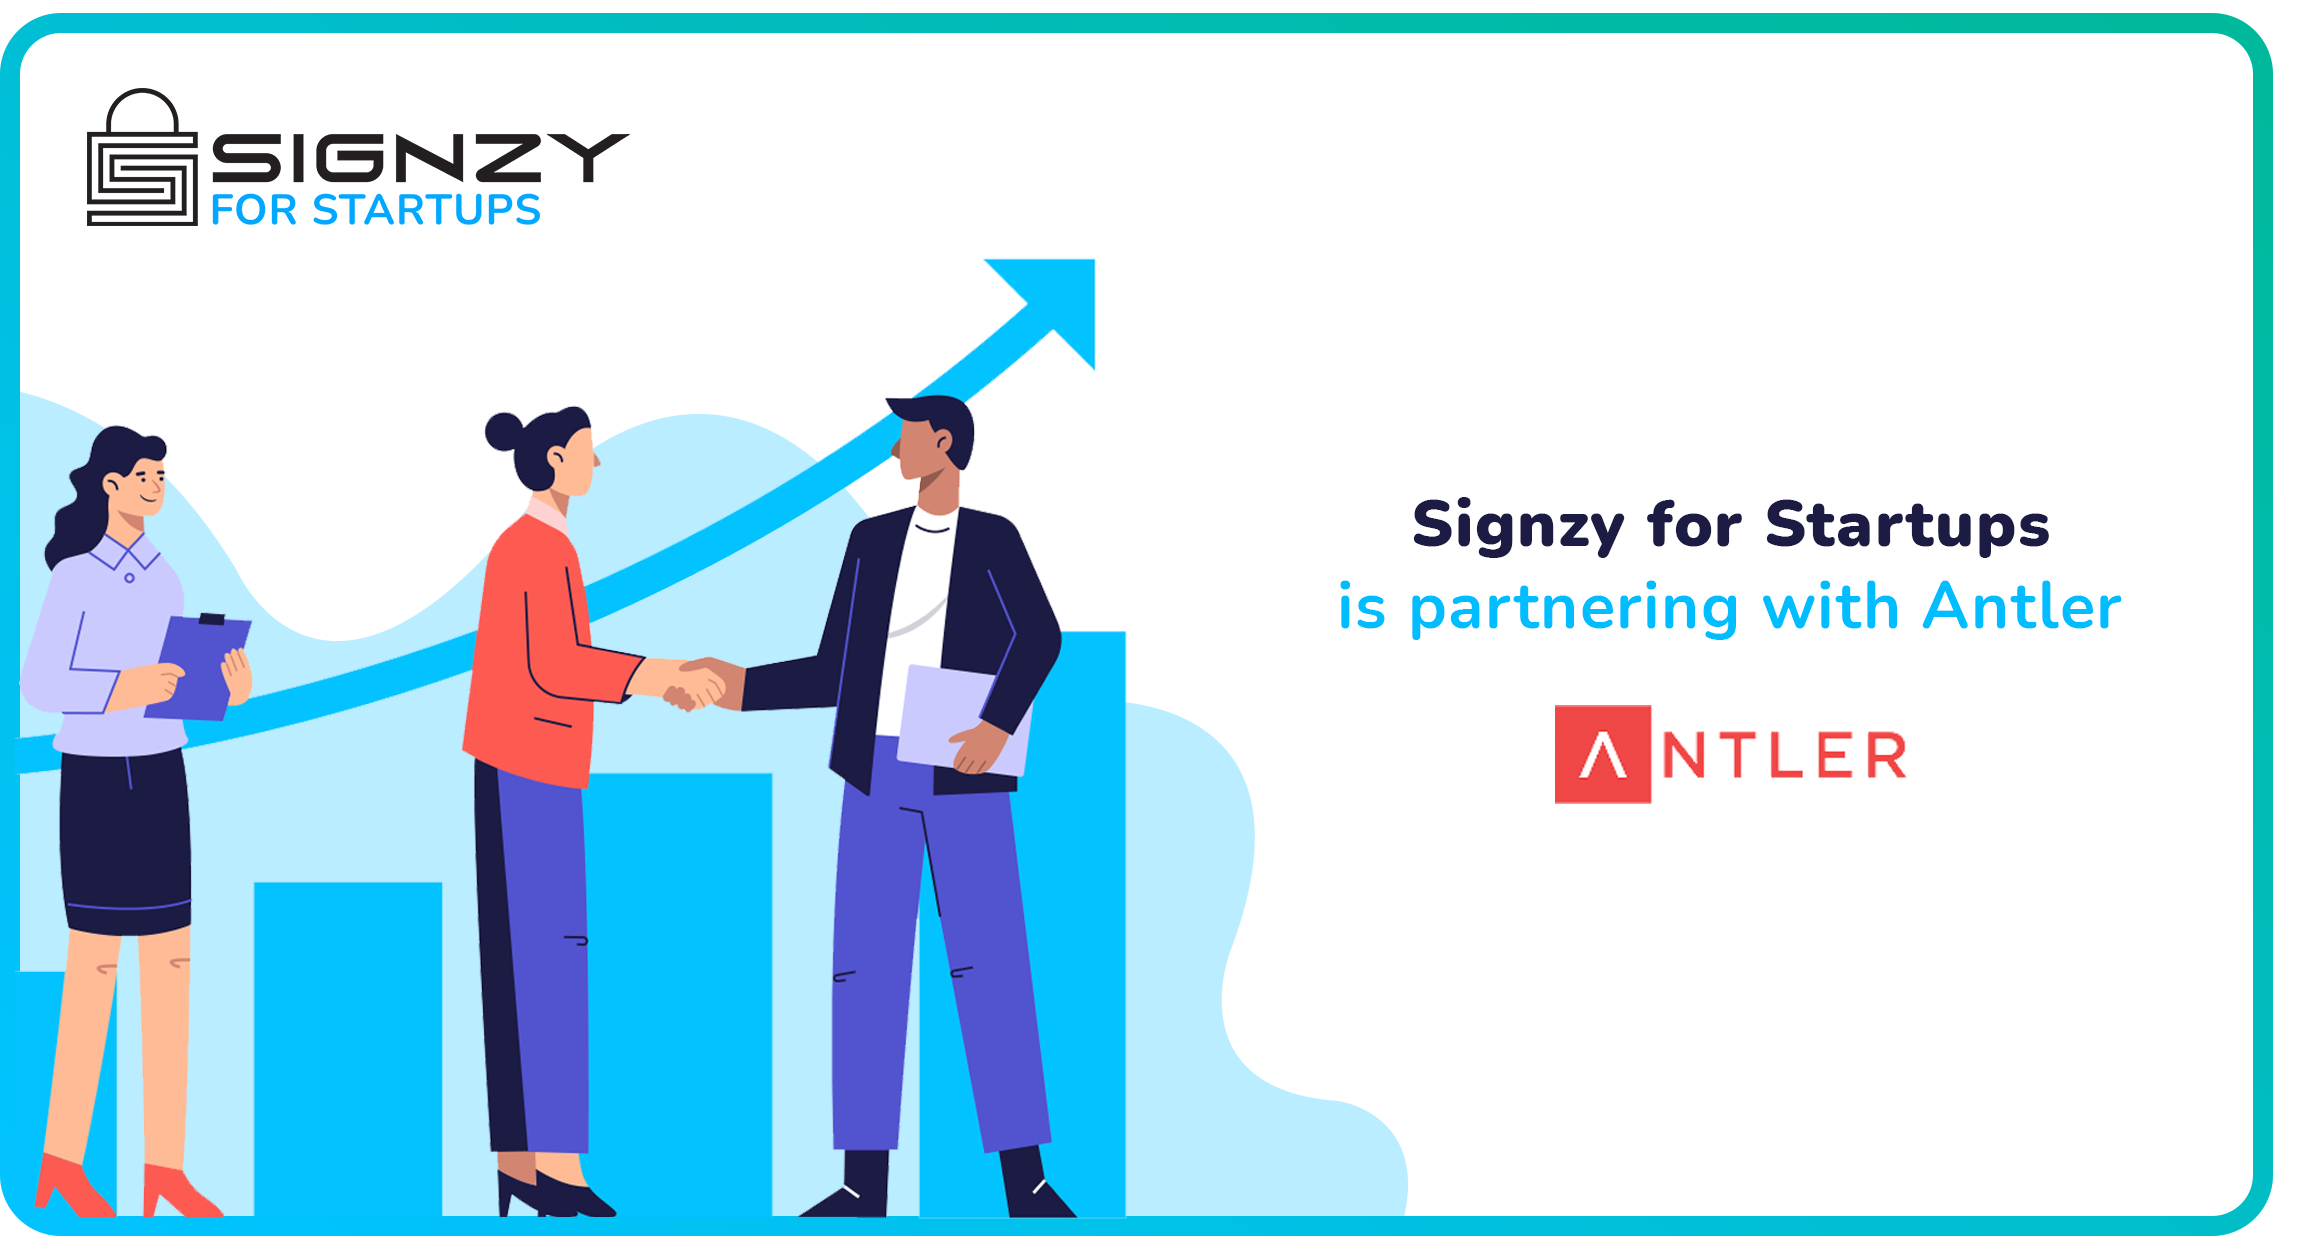 Antler and Signzy for Startups Initiative is partnering